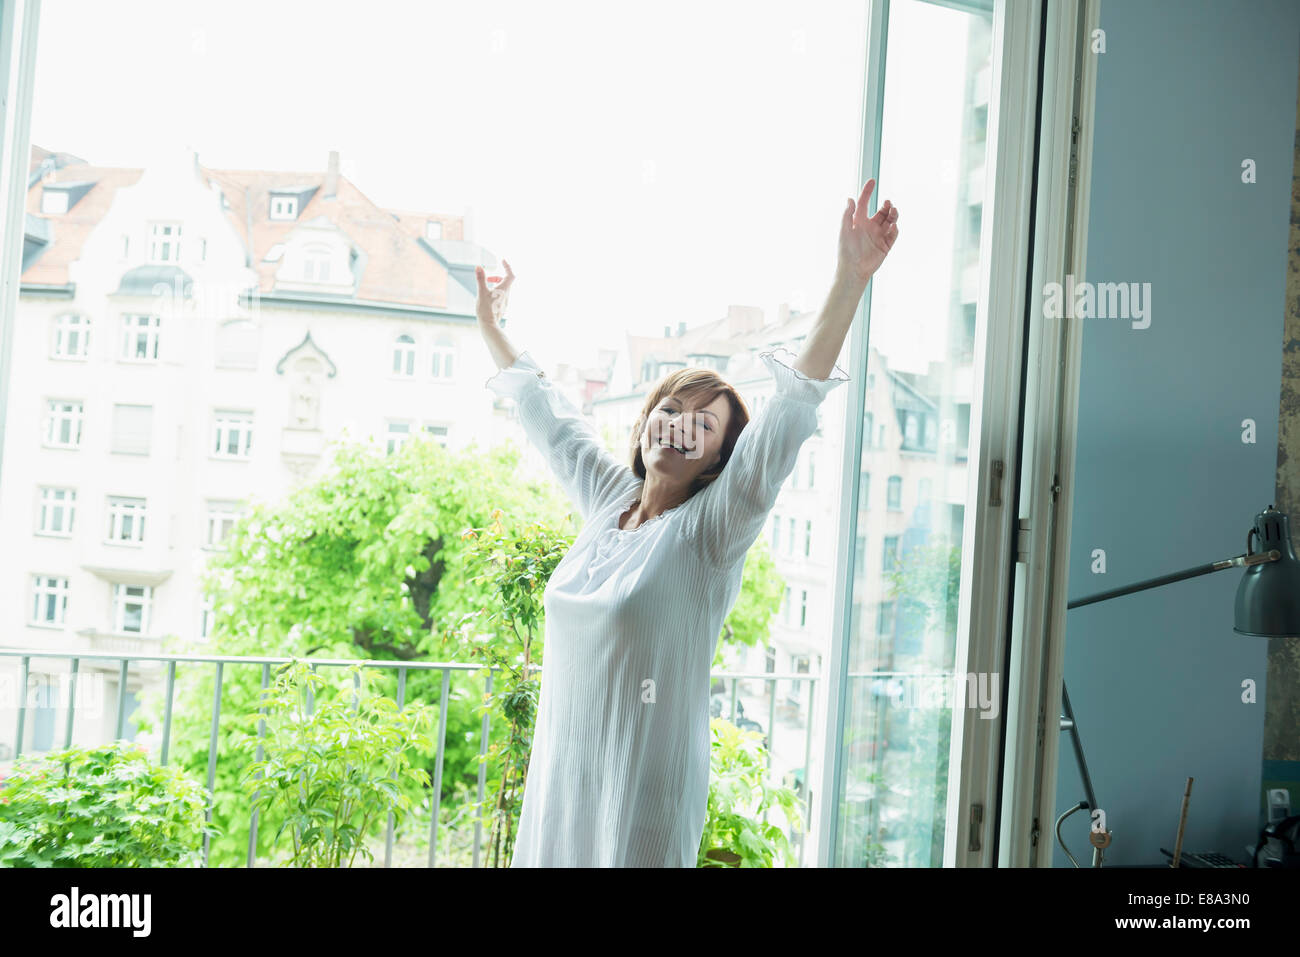 Senior woman stretching her body, smiling - Stock Image